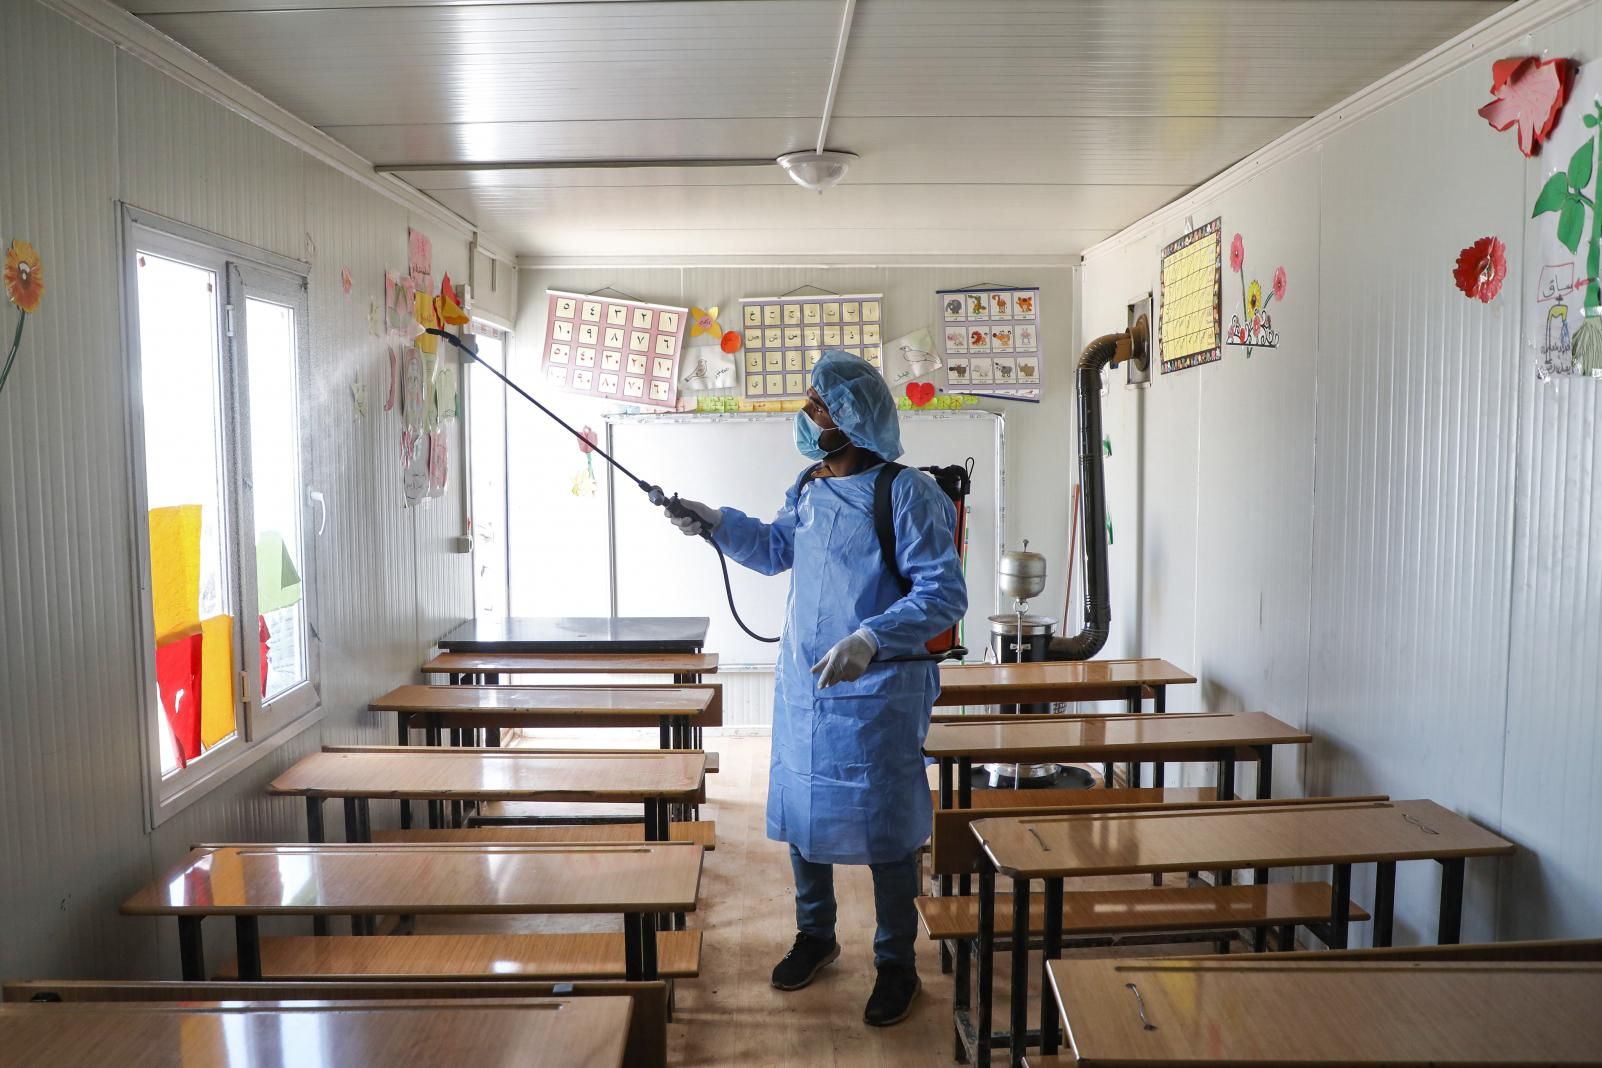 A man disinfecting an empty classroom once the school was closed.